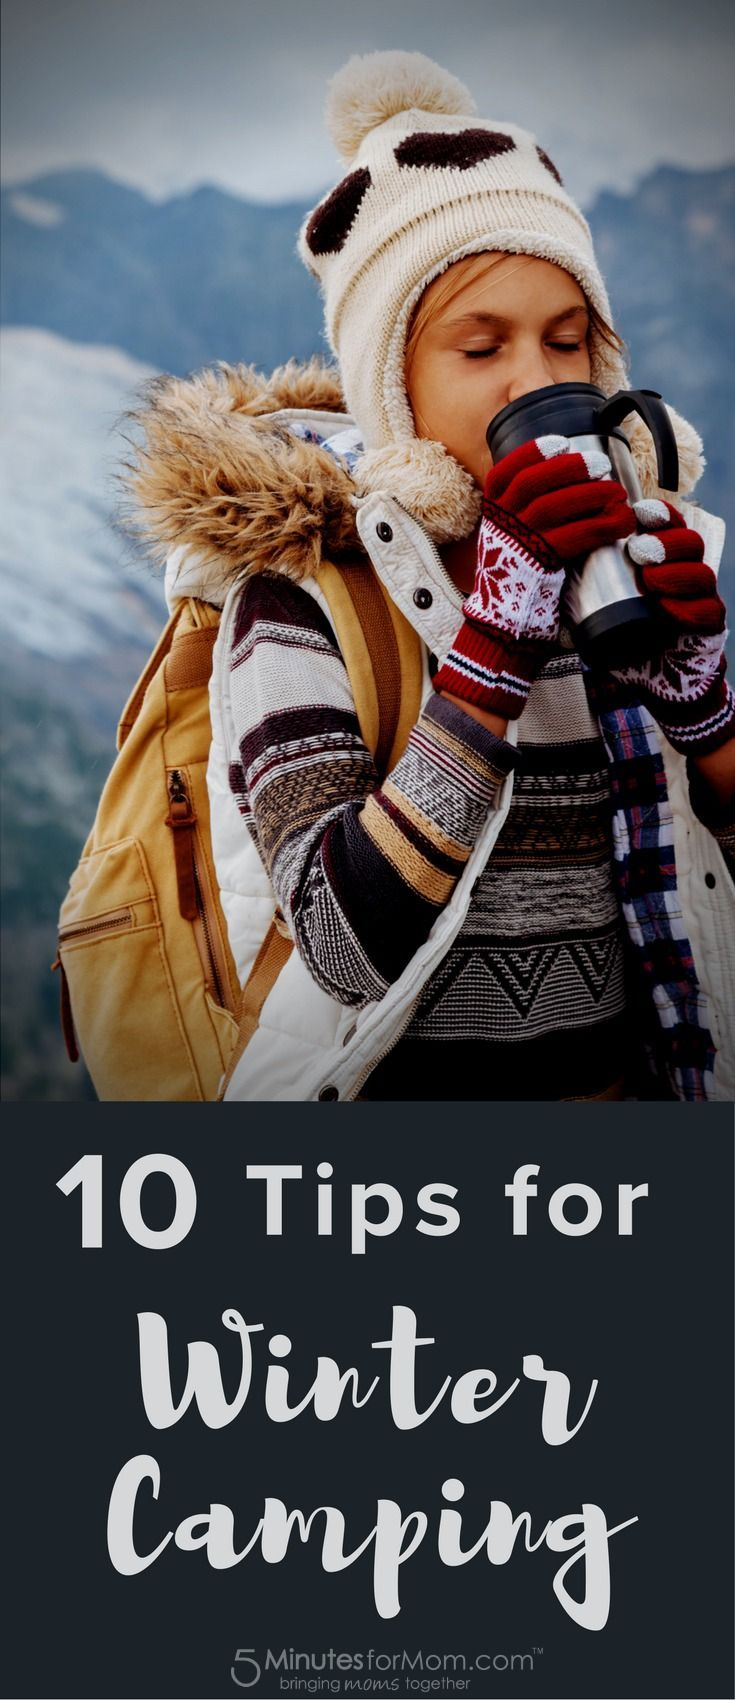 10 Tips for Winter Camping – How to have fun with your whole family camping in cooler weather